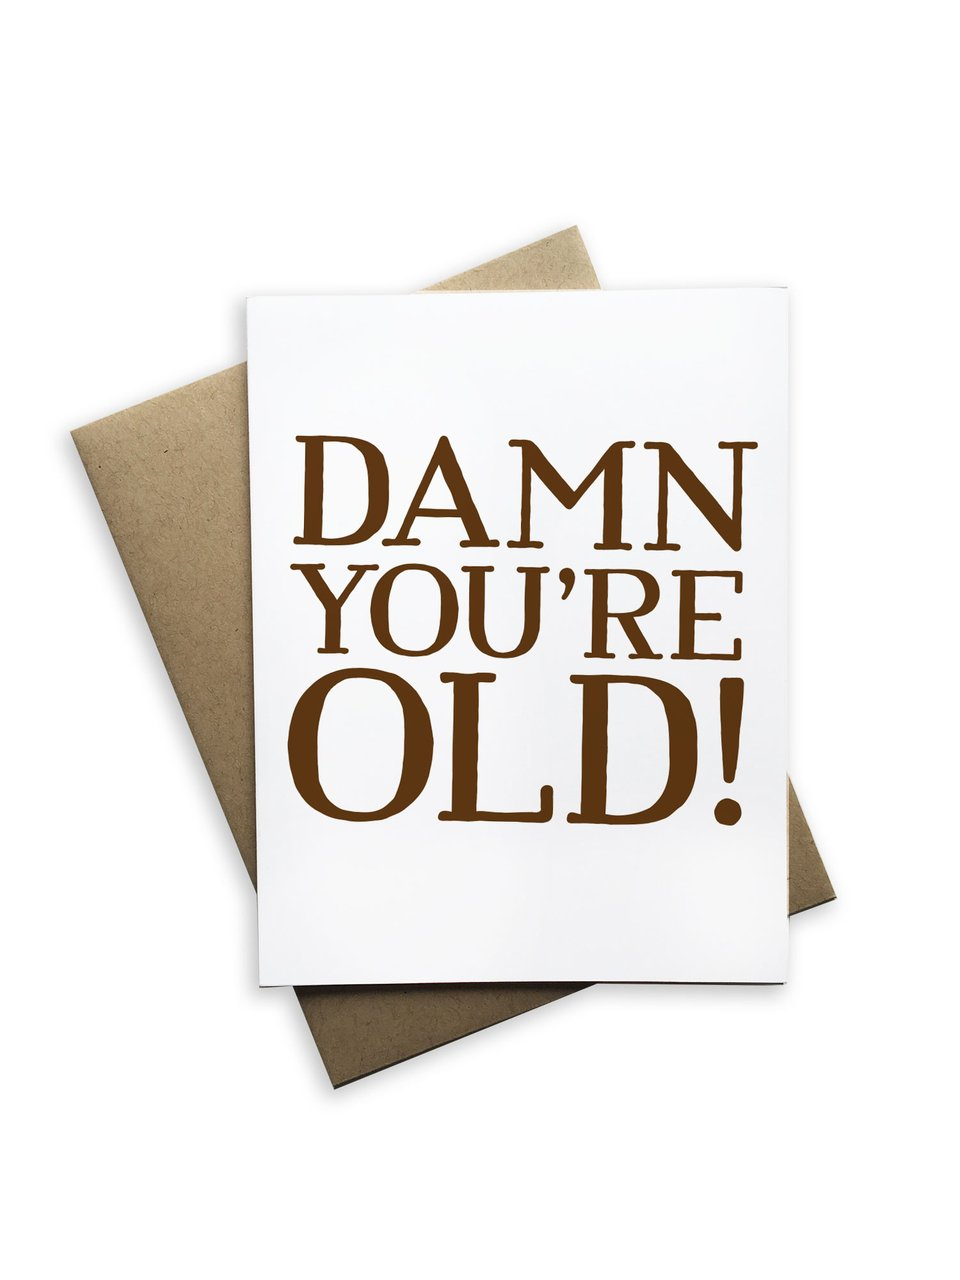 DAMN YOU'RE OLD CARD